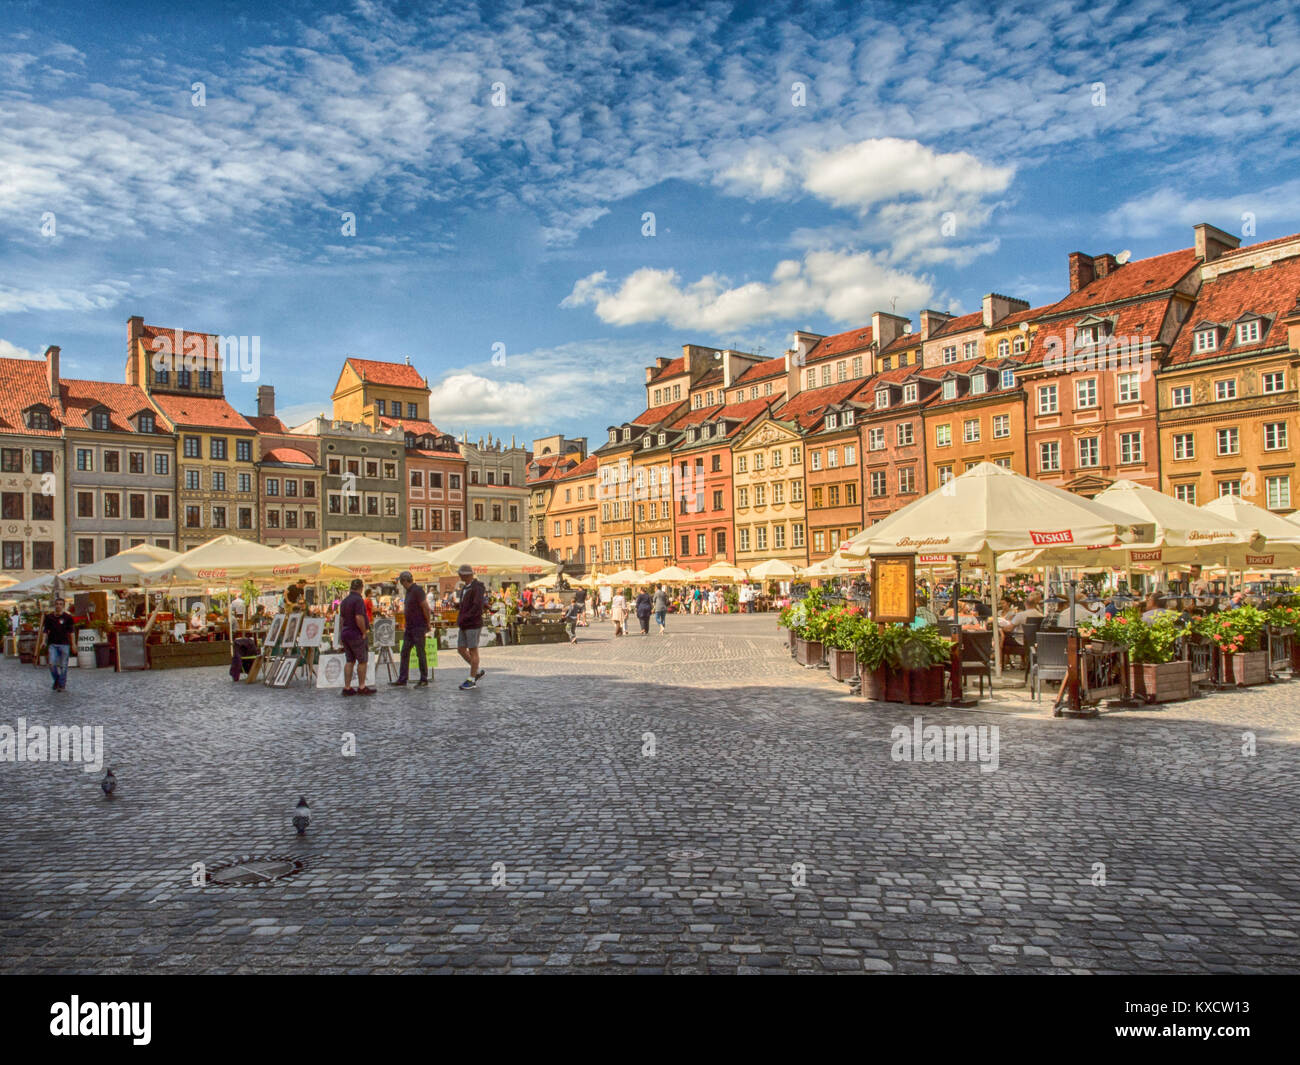 Warsaw, Poland - June 02, 2017: Cafes, stalls, colorful buildings  and the people at Old Town Square (Rynek Stare - Stock Image